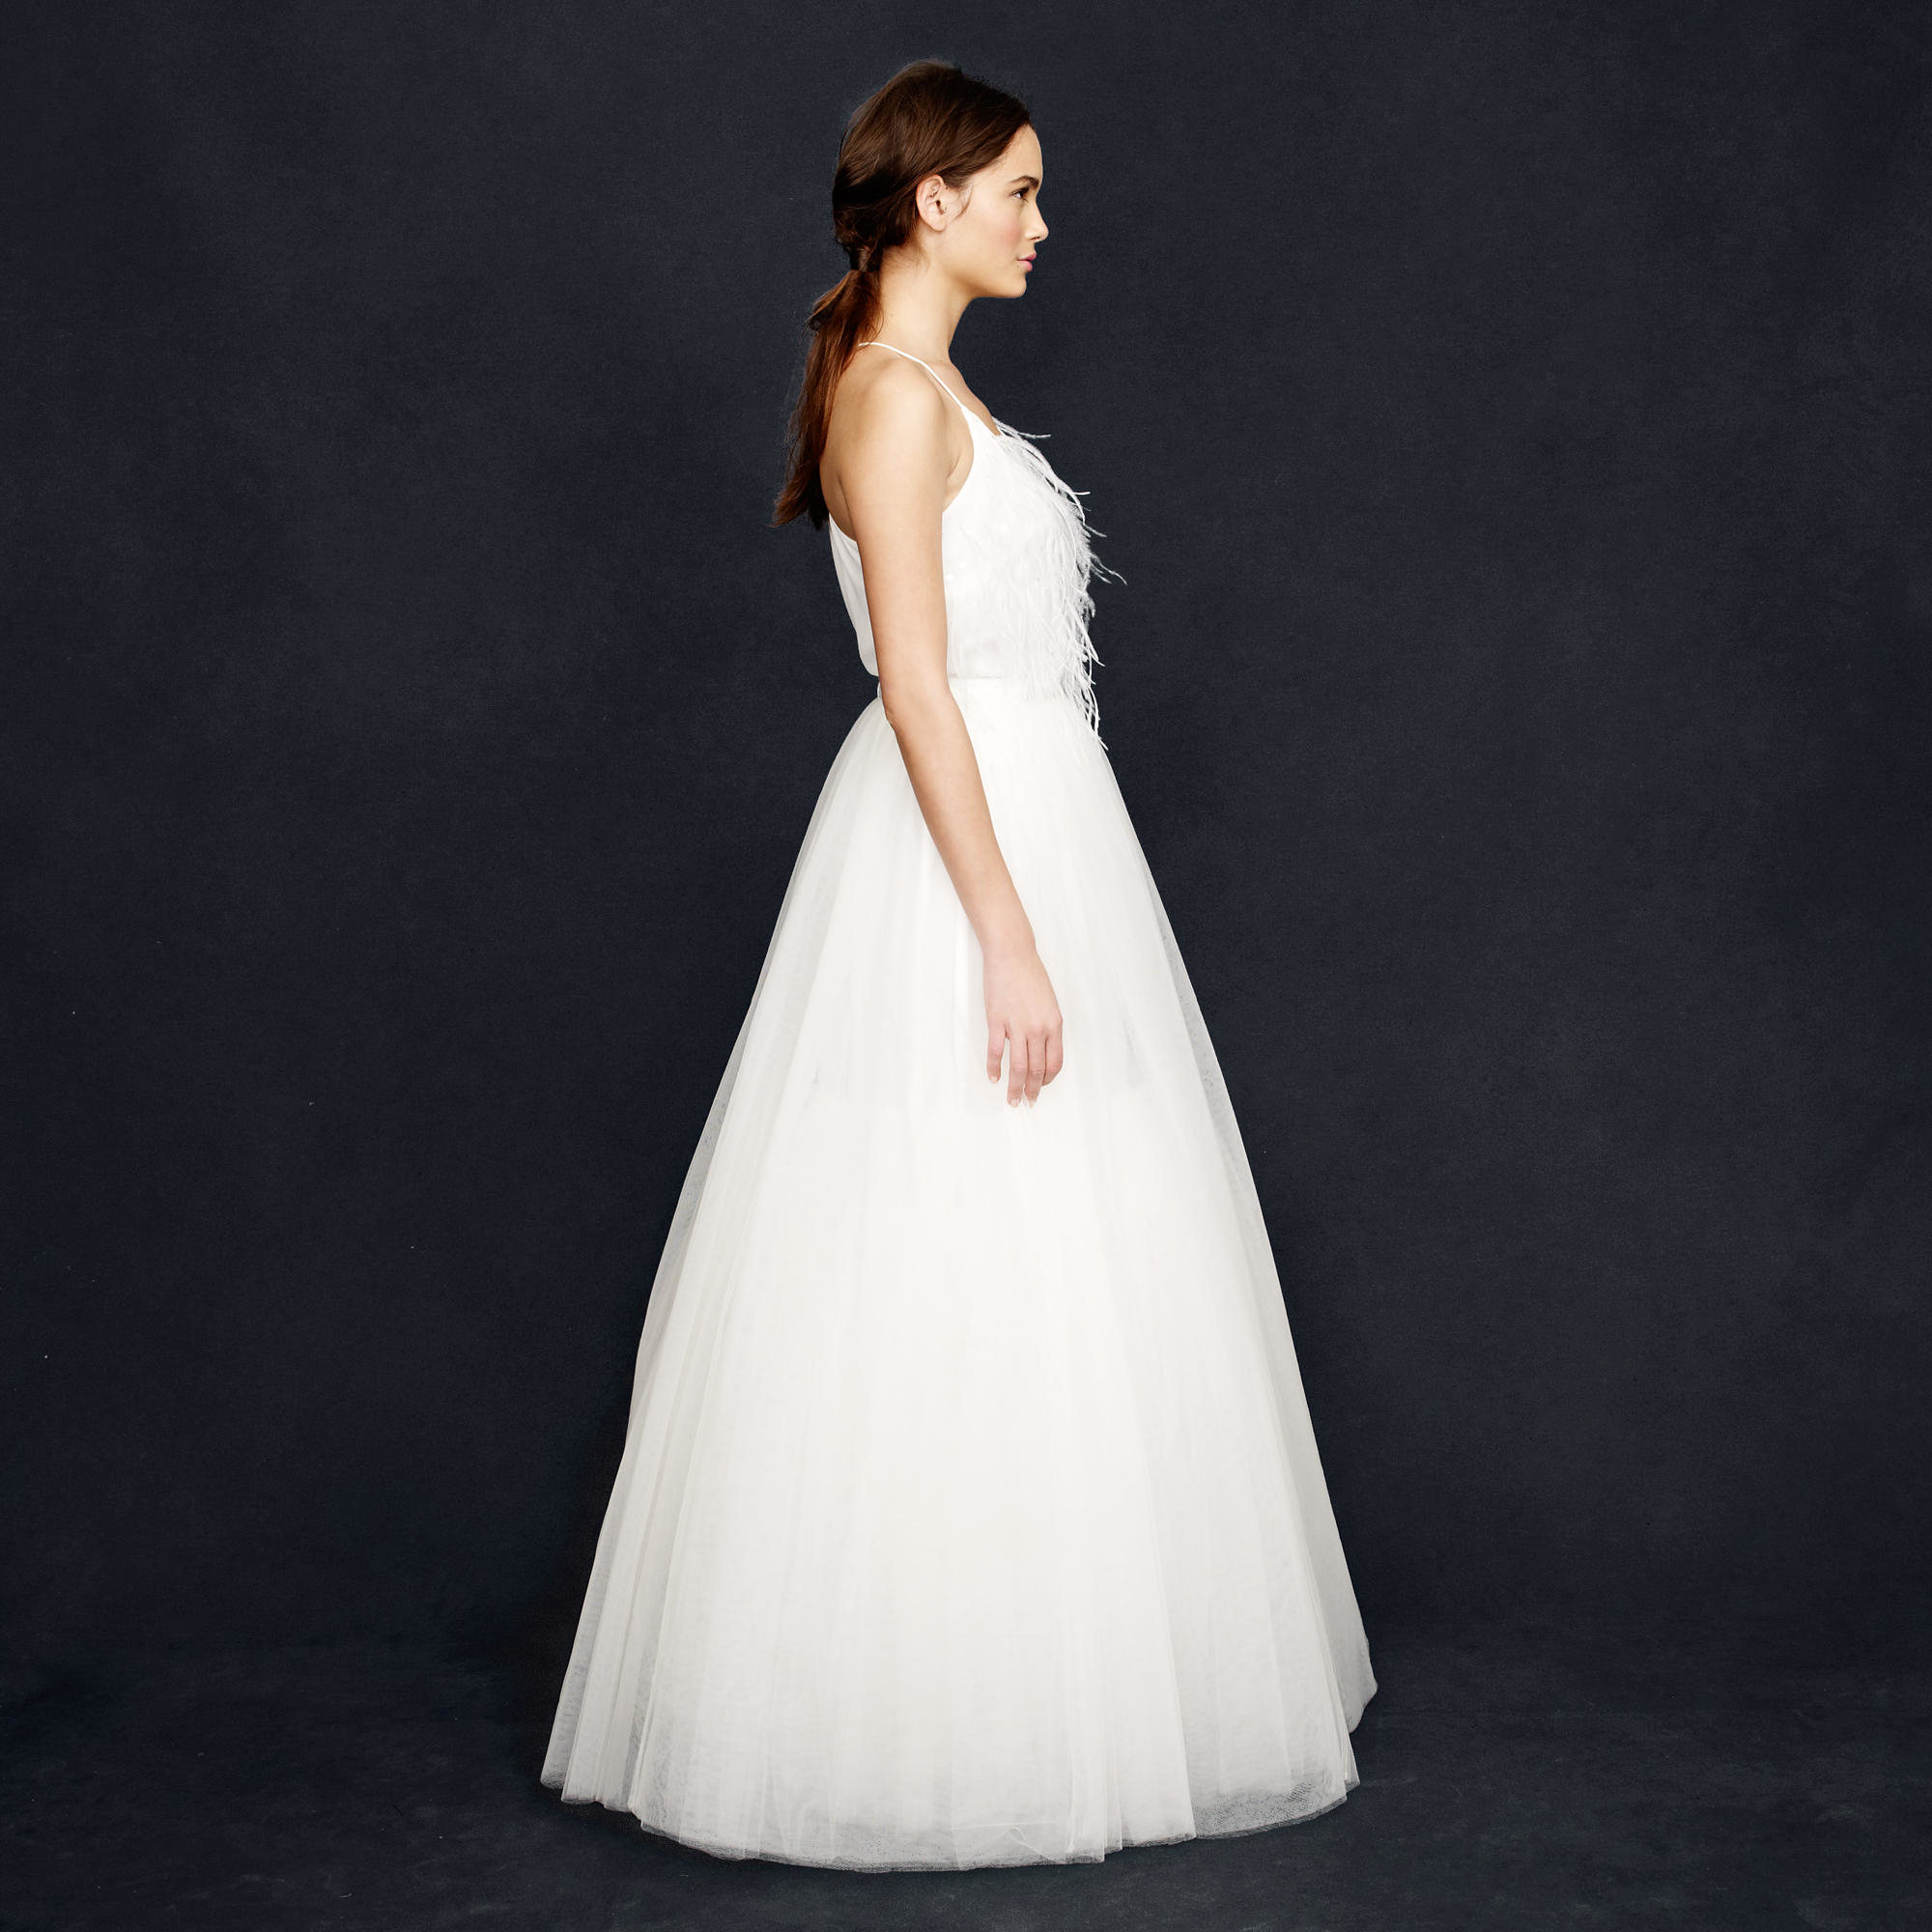 Lyst - J.Crew Collection Snowdrop Tulle Ball Gown Skirt in White